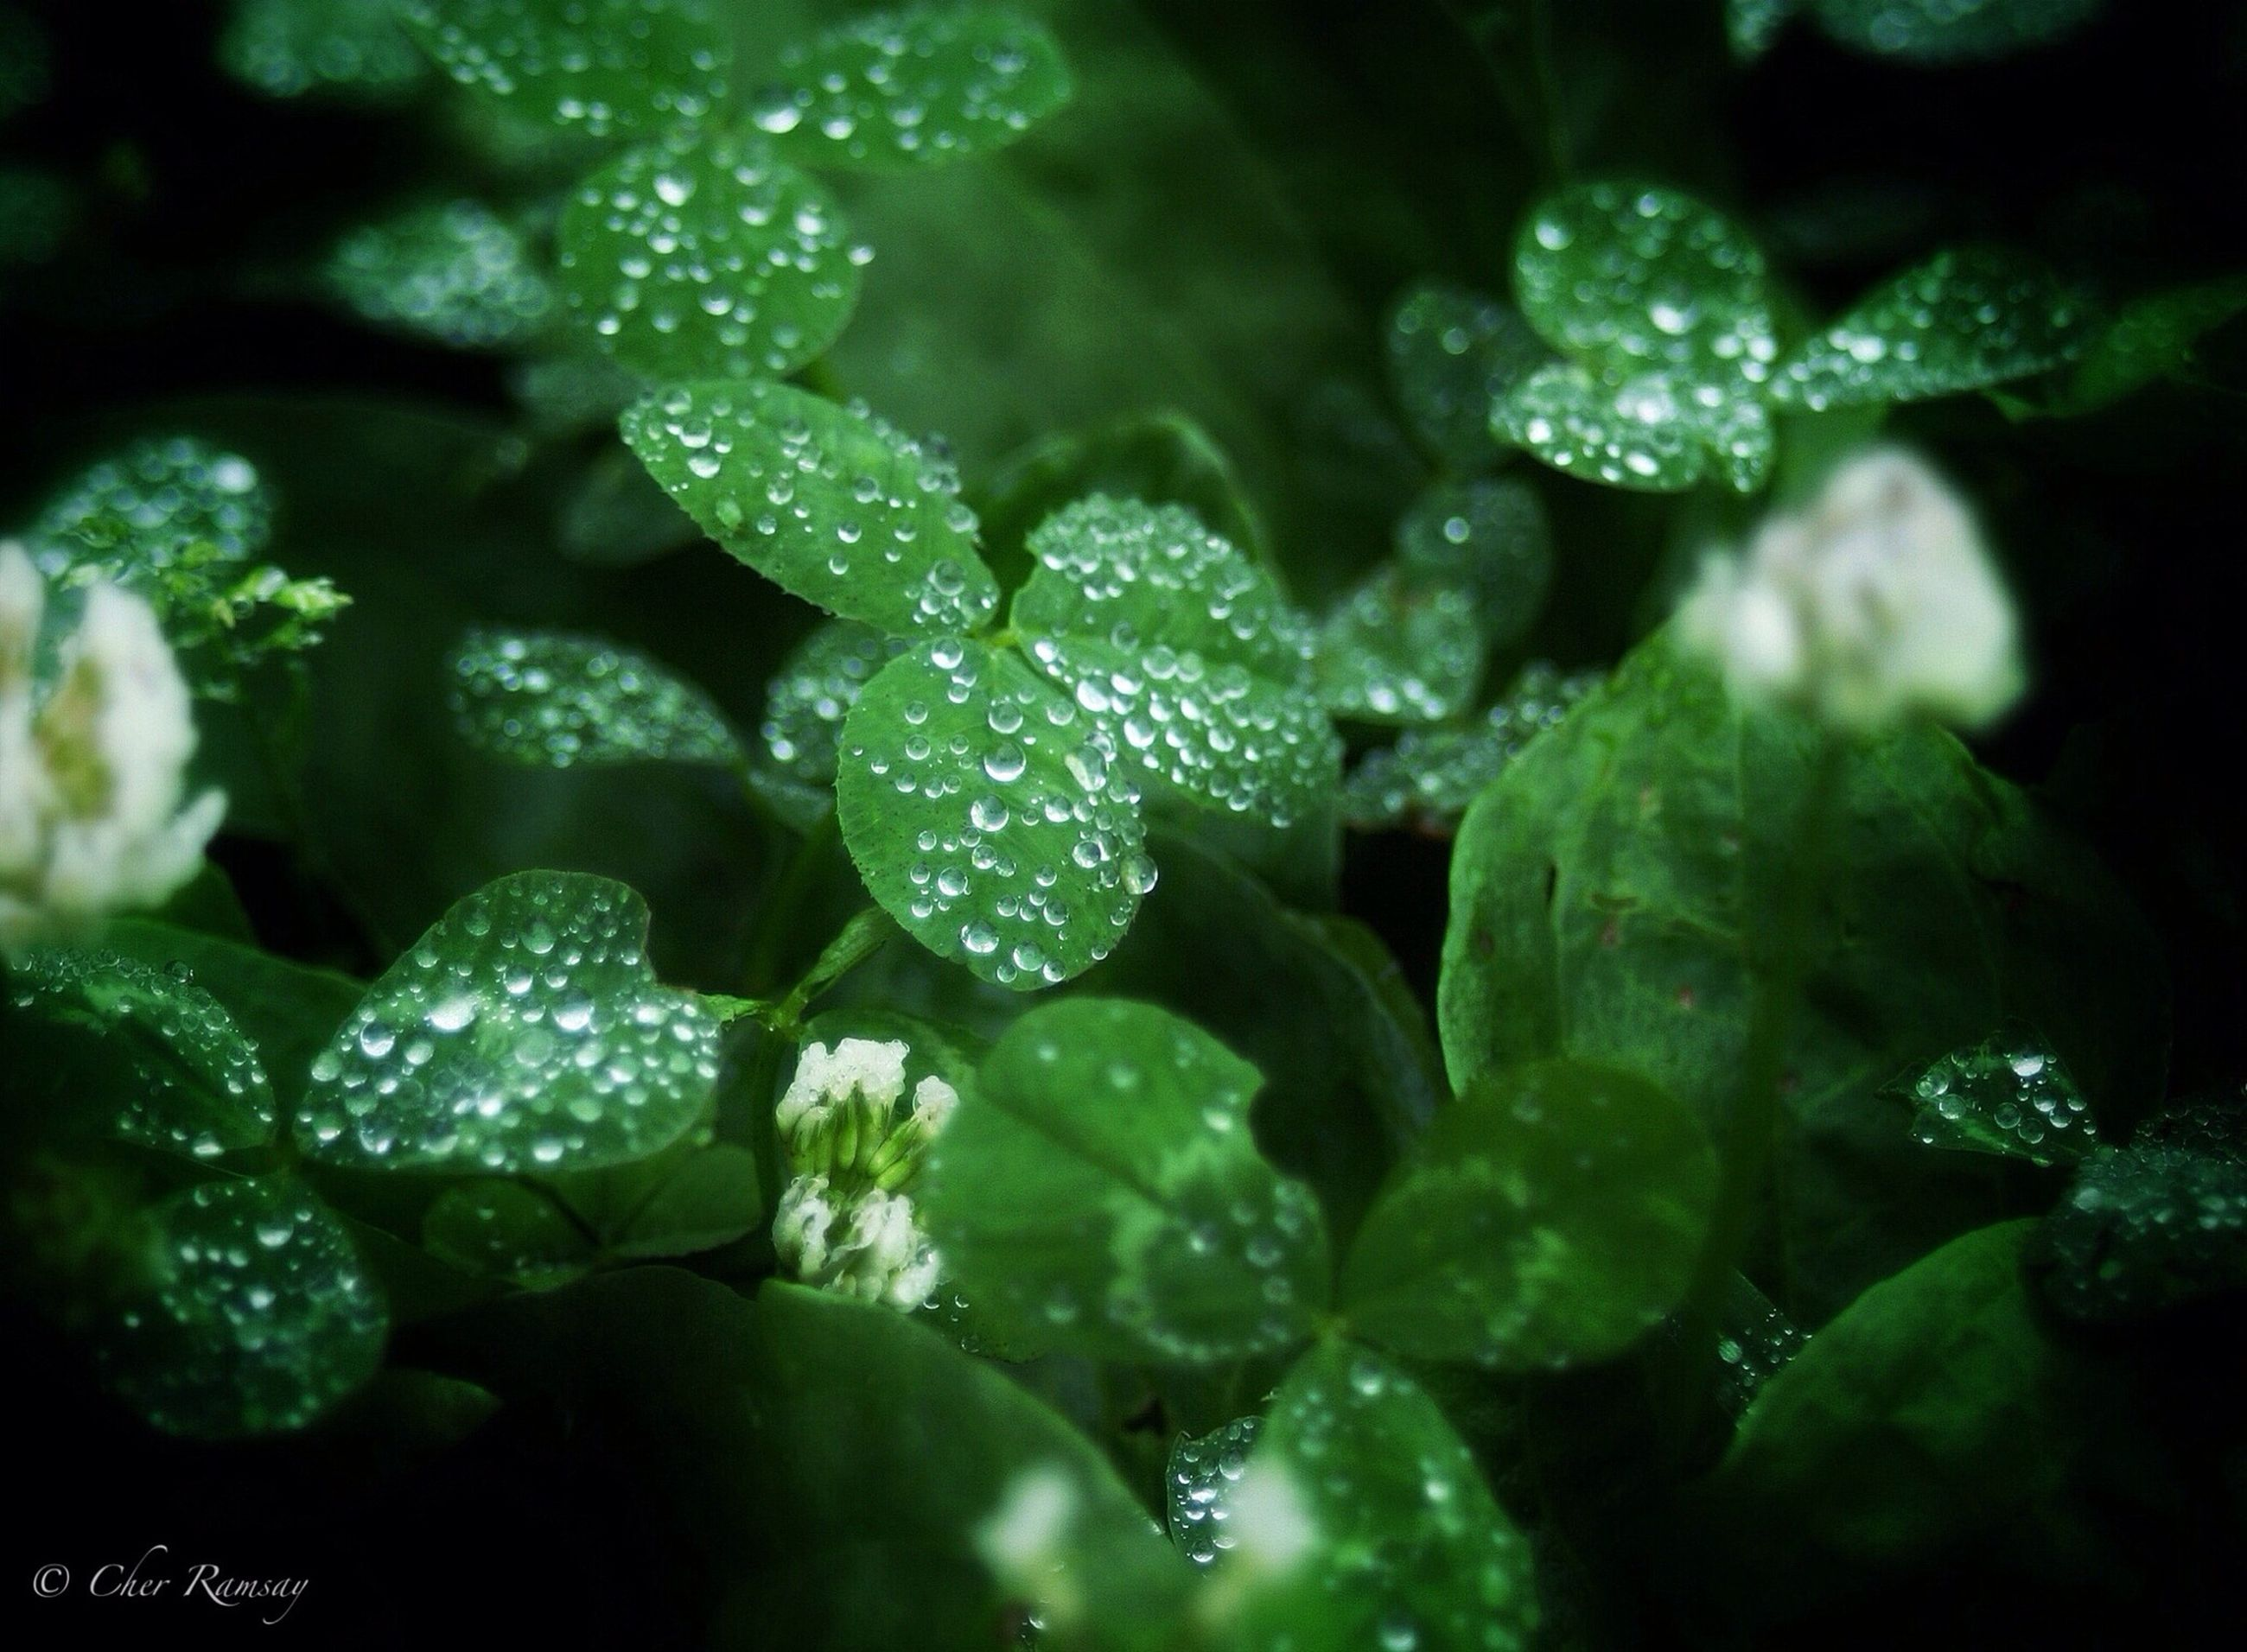 drop, water, freshness, wet, close-up, leaf, green color, growth, dew, beauty in nature, nature, plant, raindrop, fragility, water drop, focus on foreground, purity, rain, no people, droplet